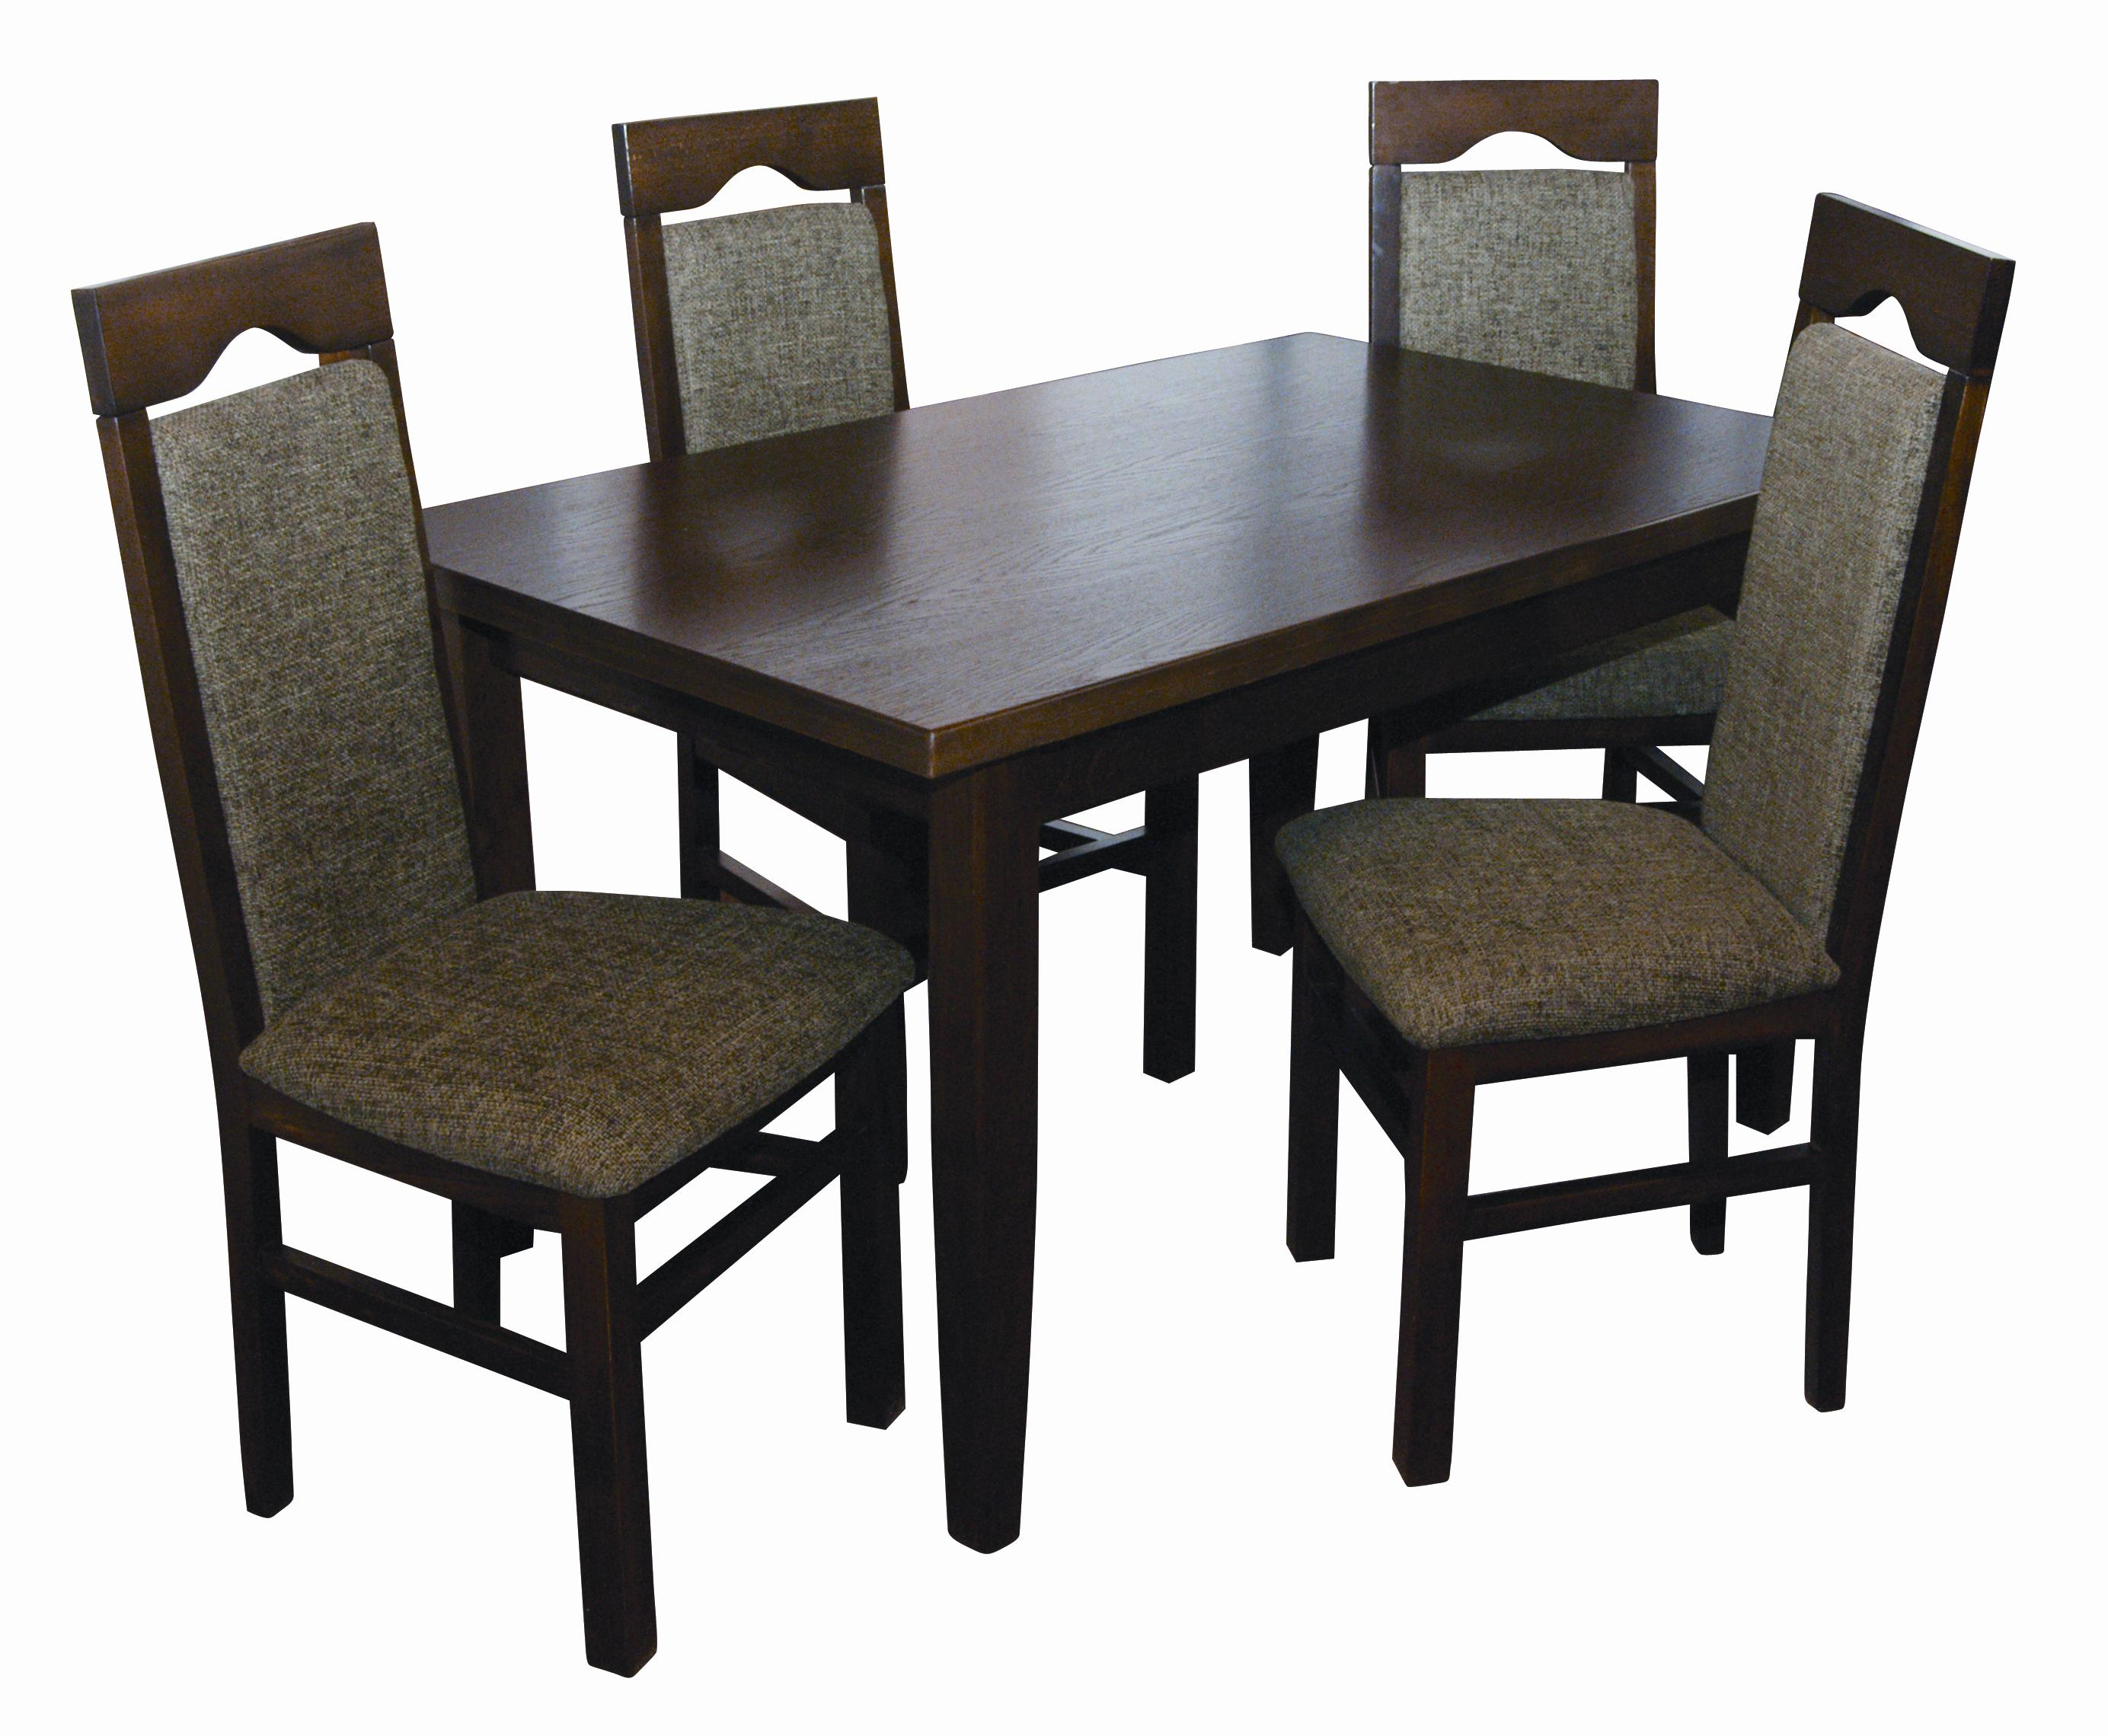 chaises de restaurant design 0 0 2000 0 pi ces. Black Bedroom Furniture Sets. Home Design Ideas